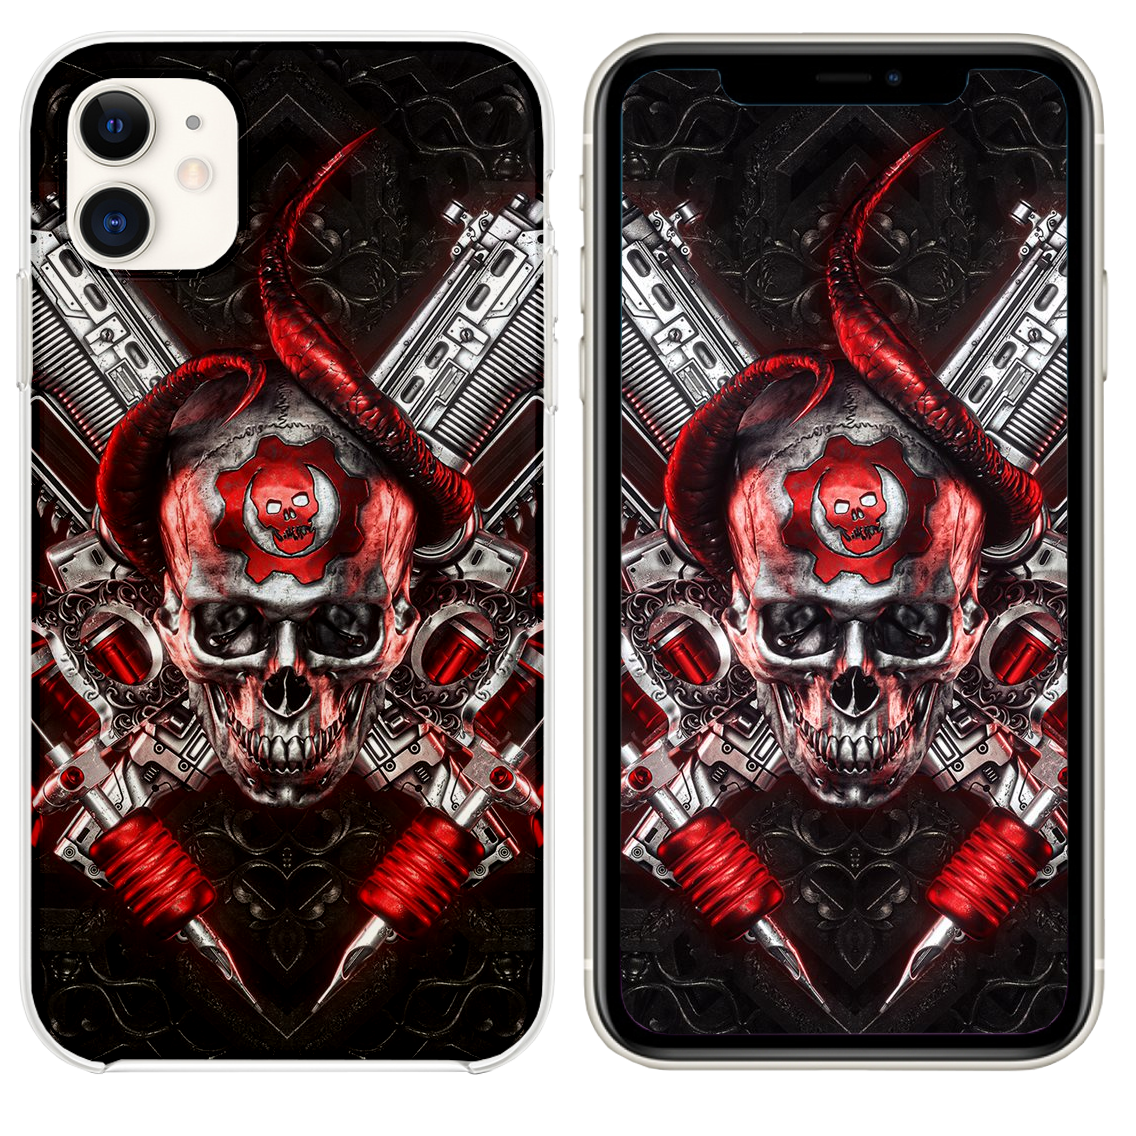 4k Gears Of War Logo Art Iphone 11 Case Cover And Wallpaper Case